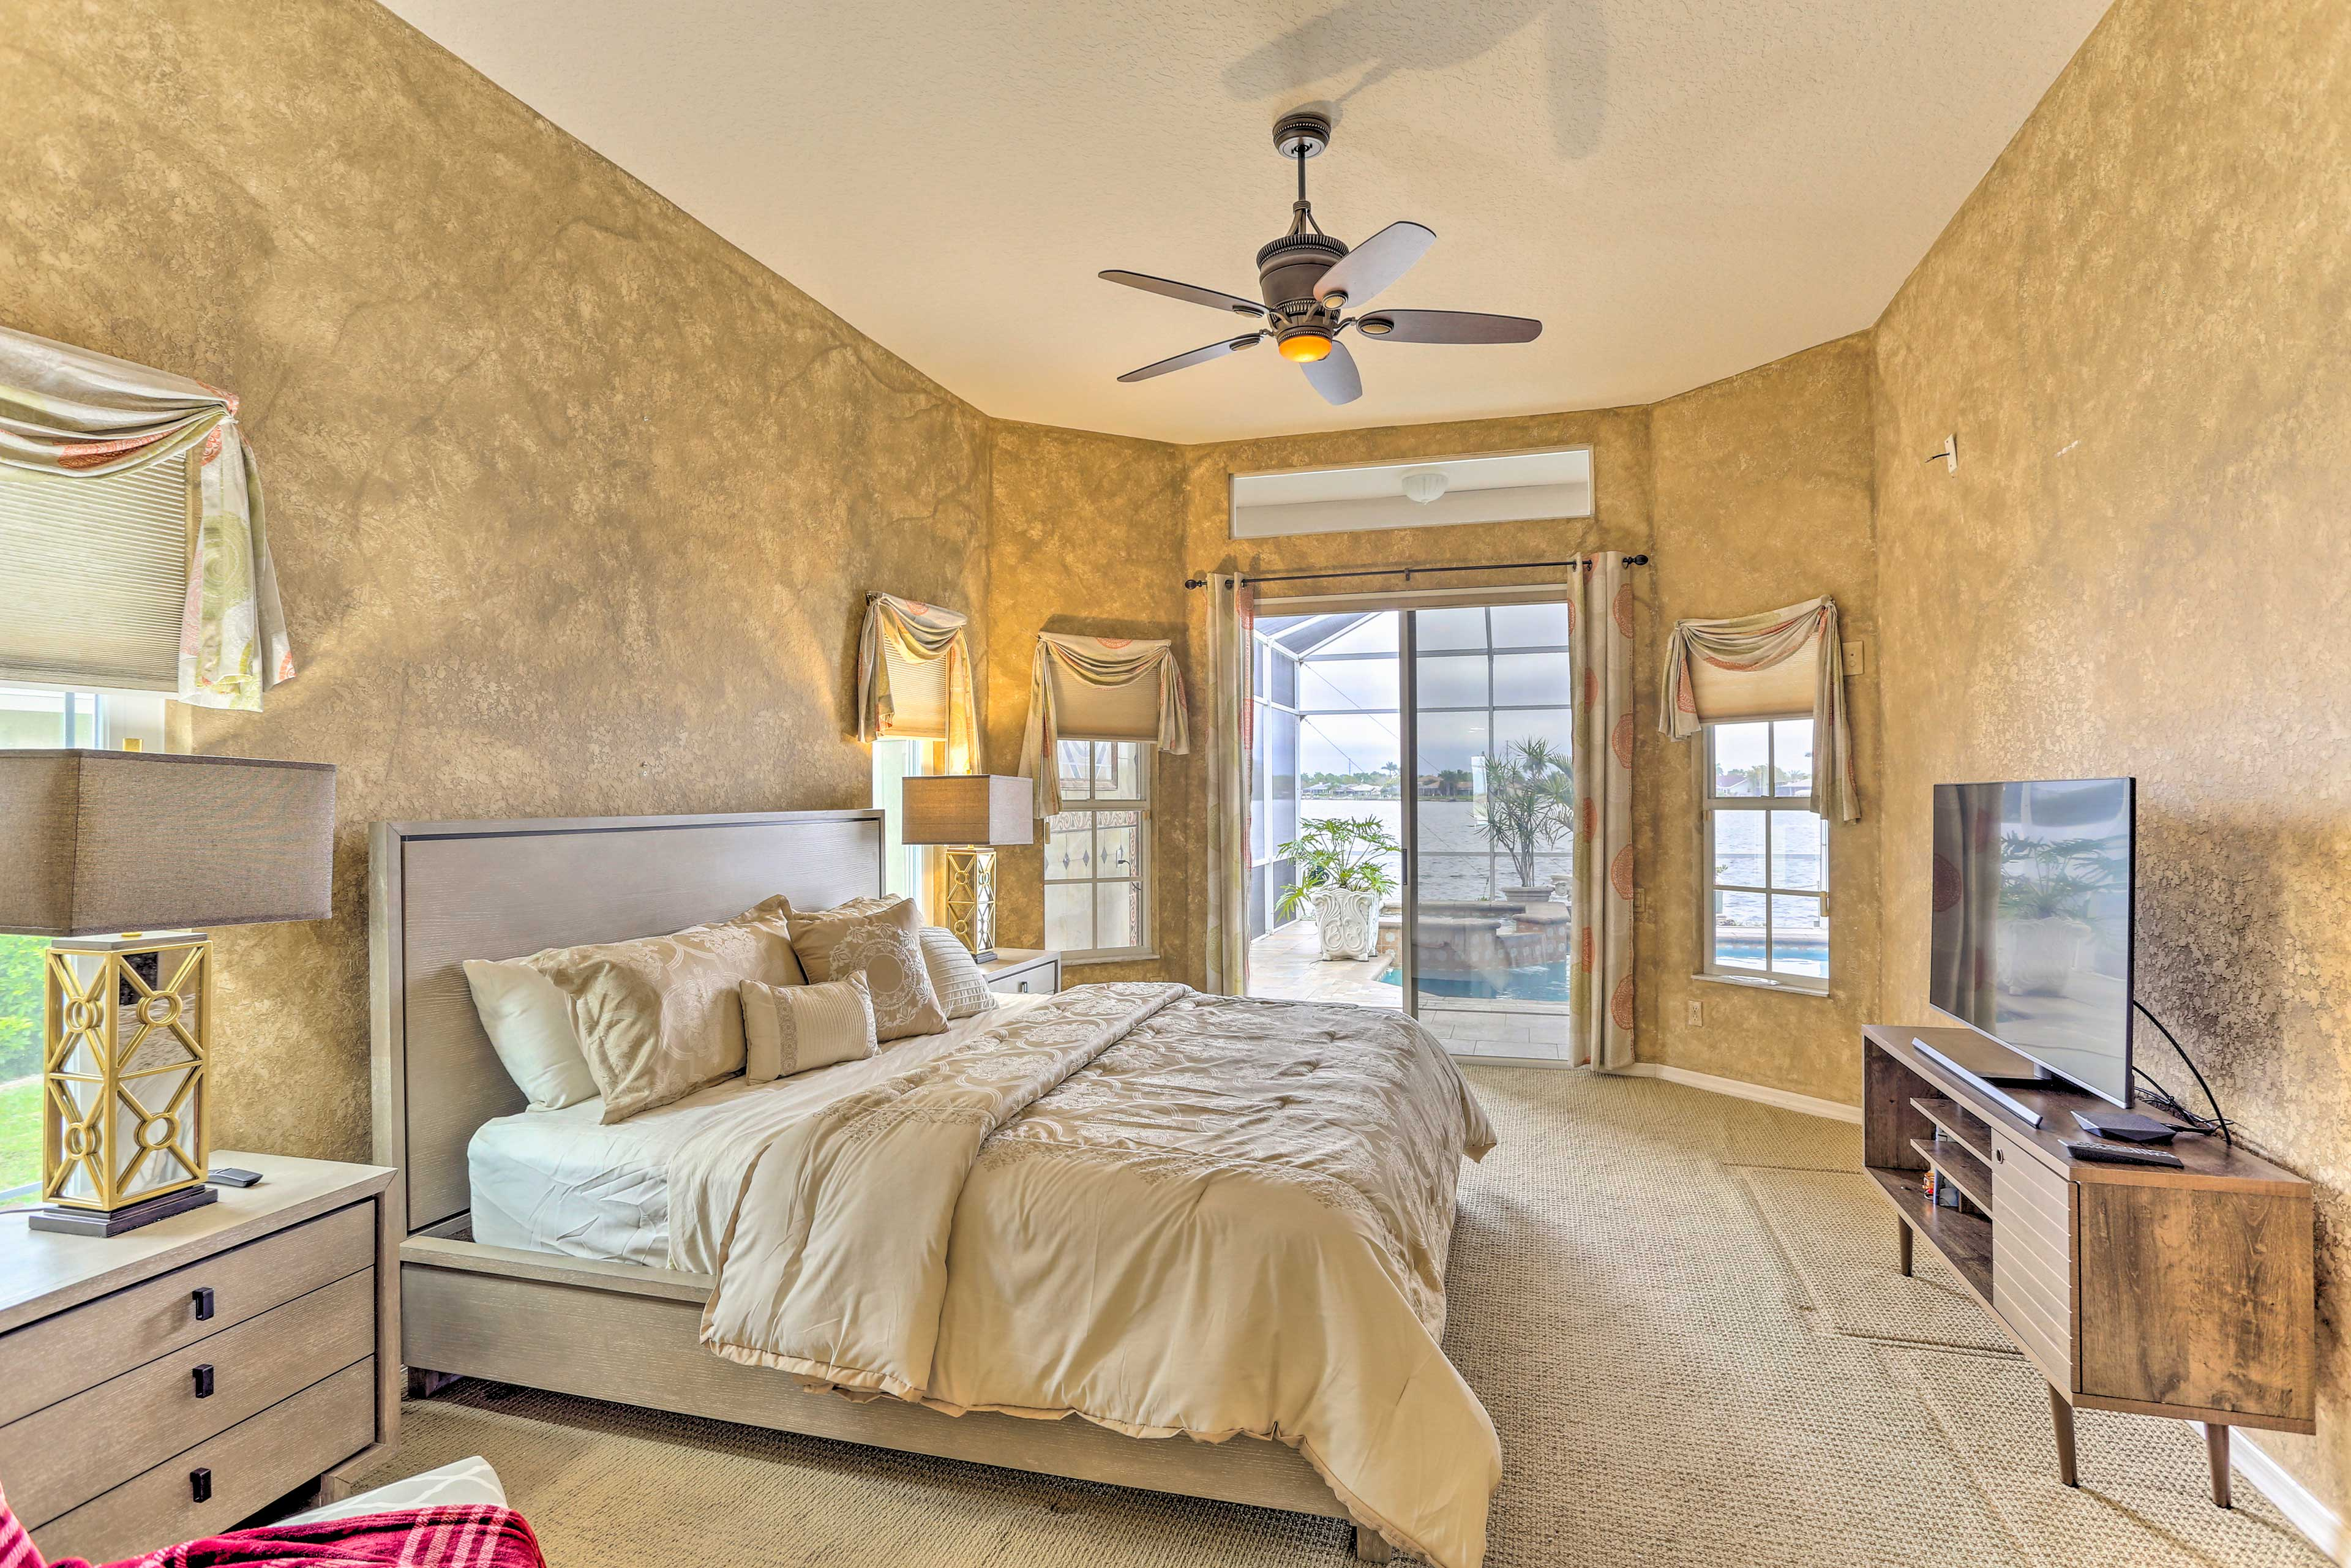 Off the living room and with patio access, you'll find the master bedroom.